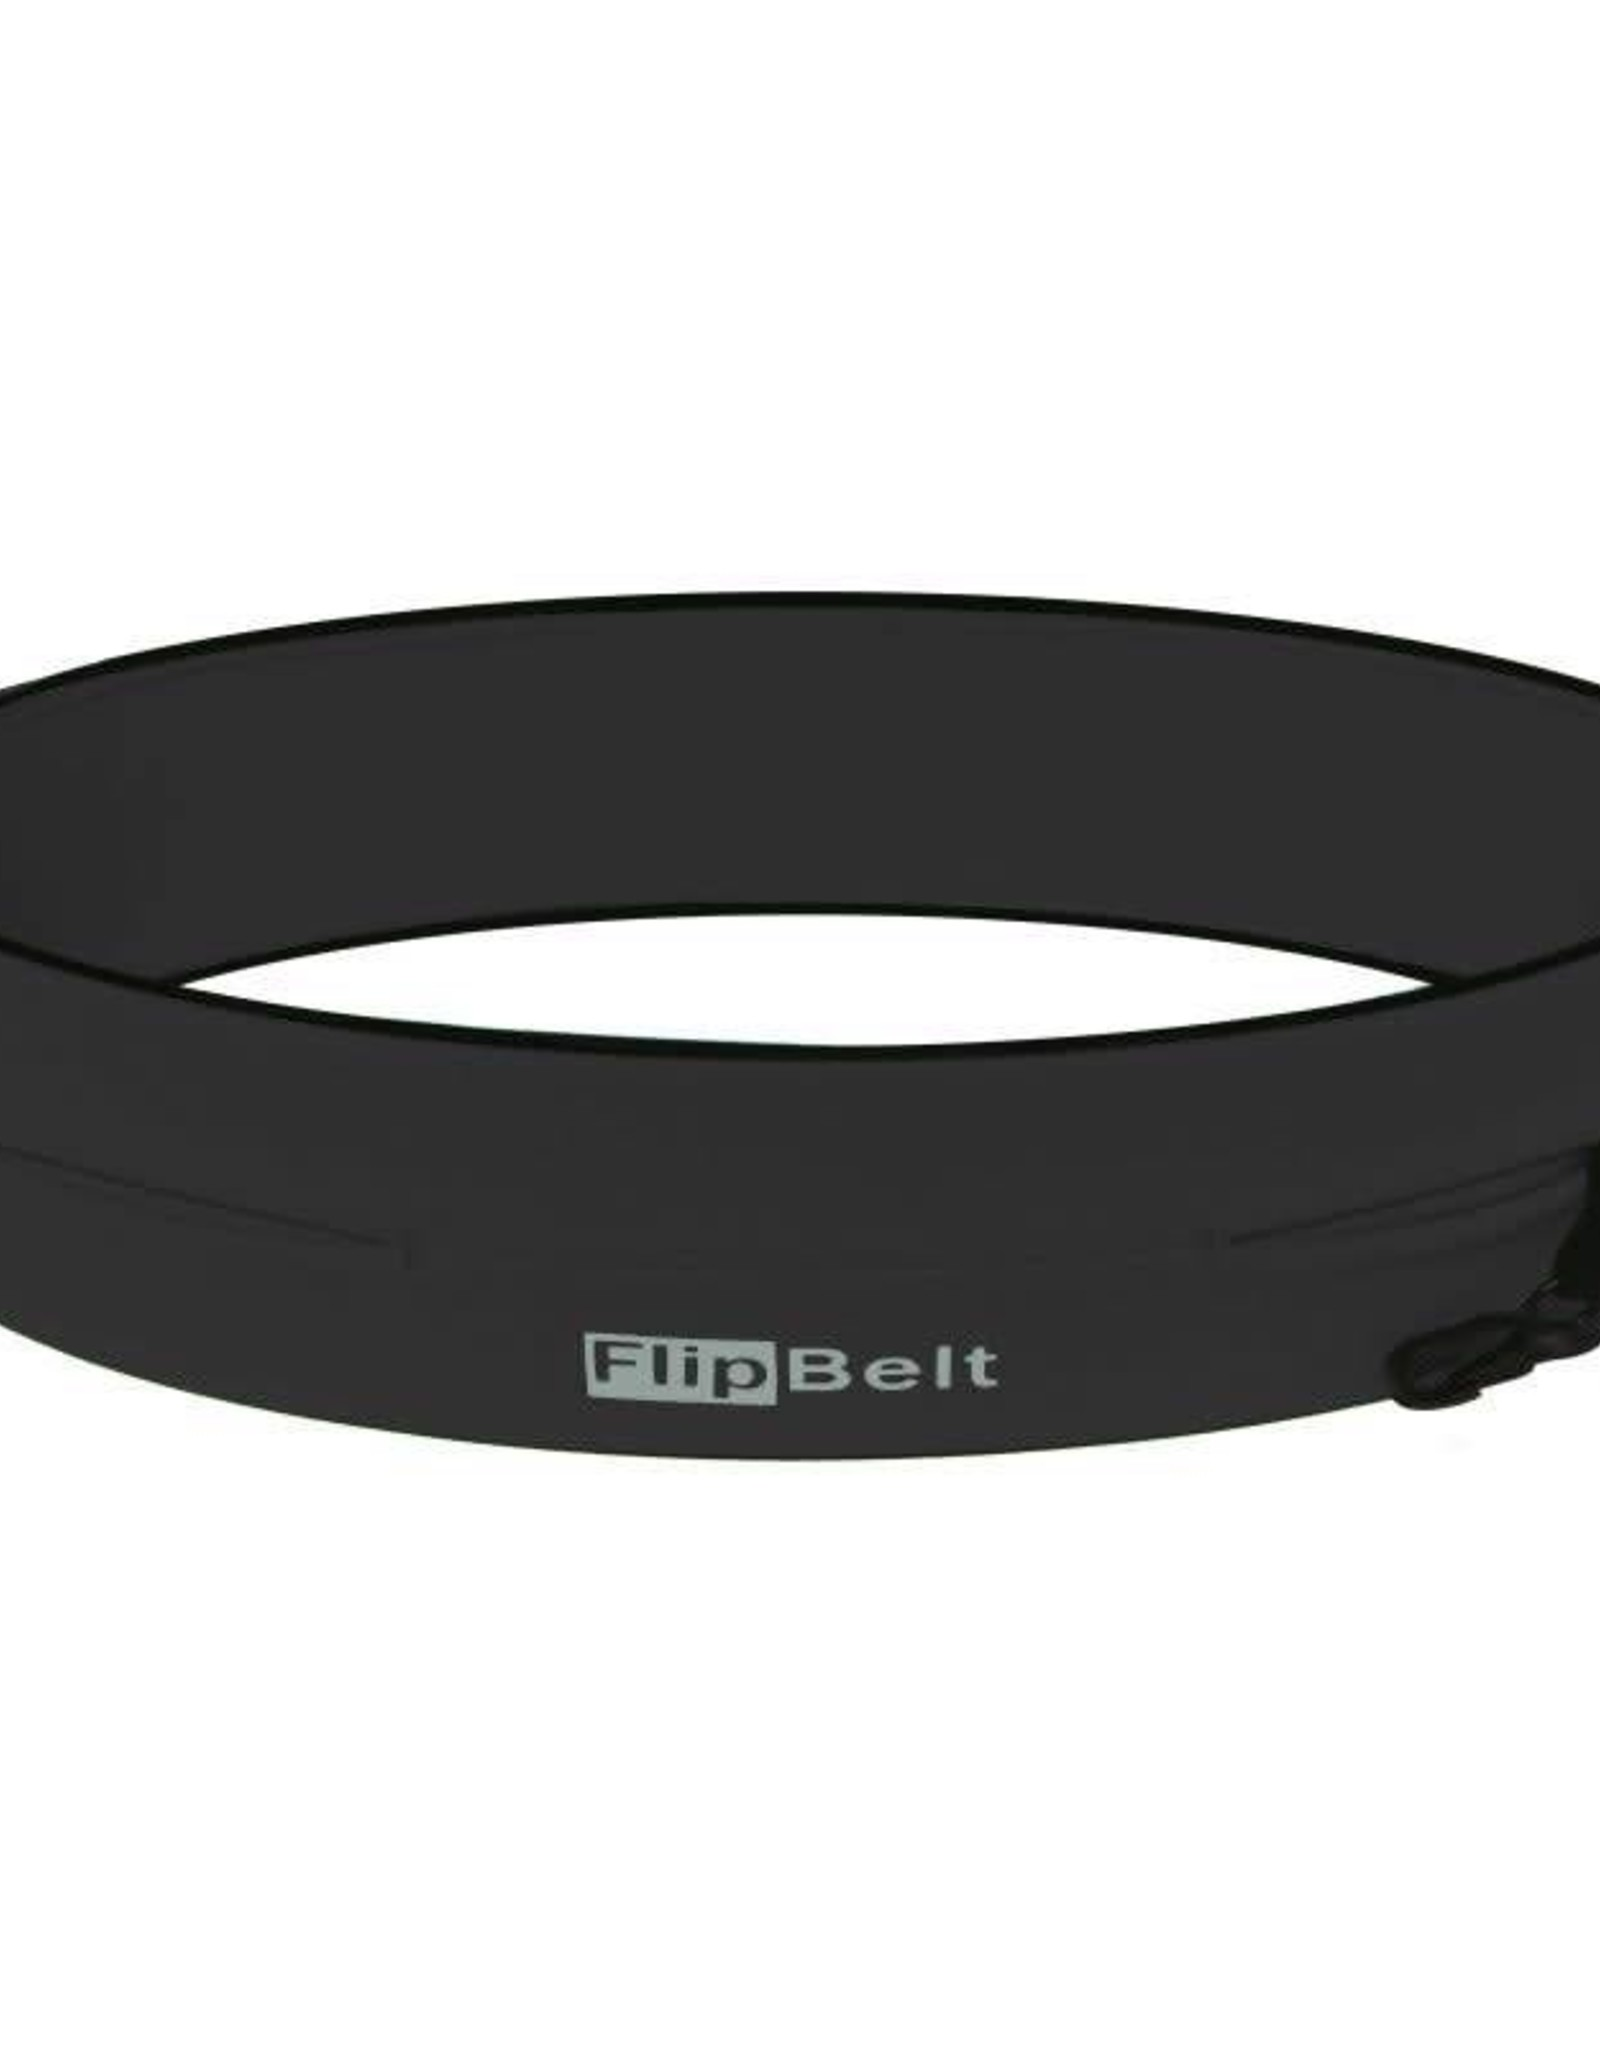 Flipbelt | V1.1 cARBON - XS EXTRA SMALL | FB0114-CAR-XS